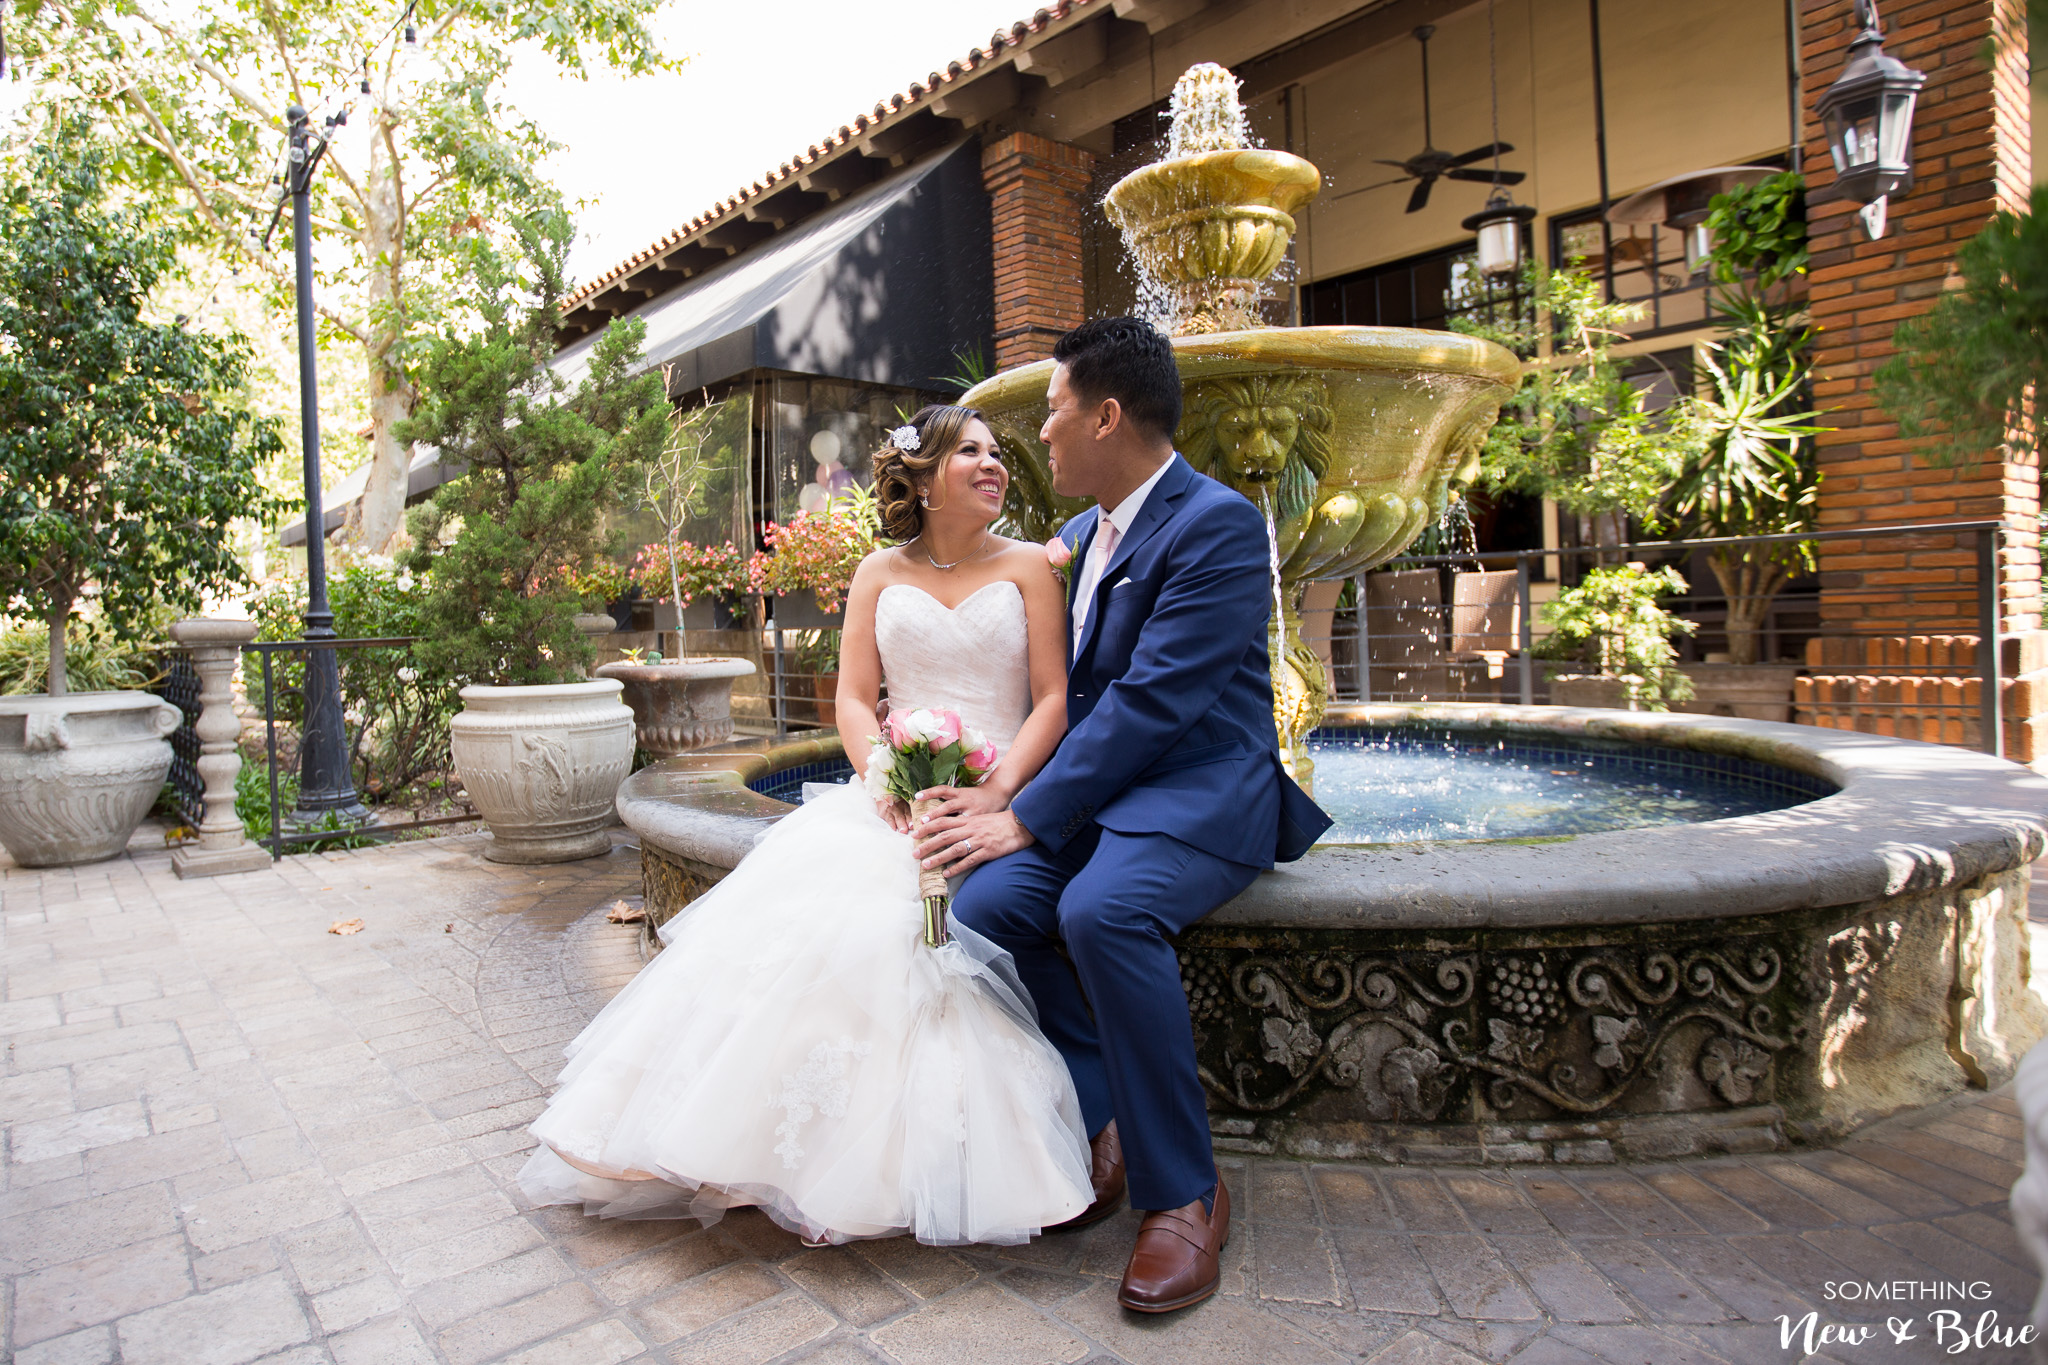 The Grove Beverly Hills Courthouse Wedding Credits Location Maggiano S Los Angeles Ca Photography Something New And Blue Studio